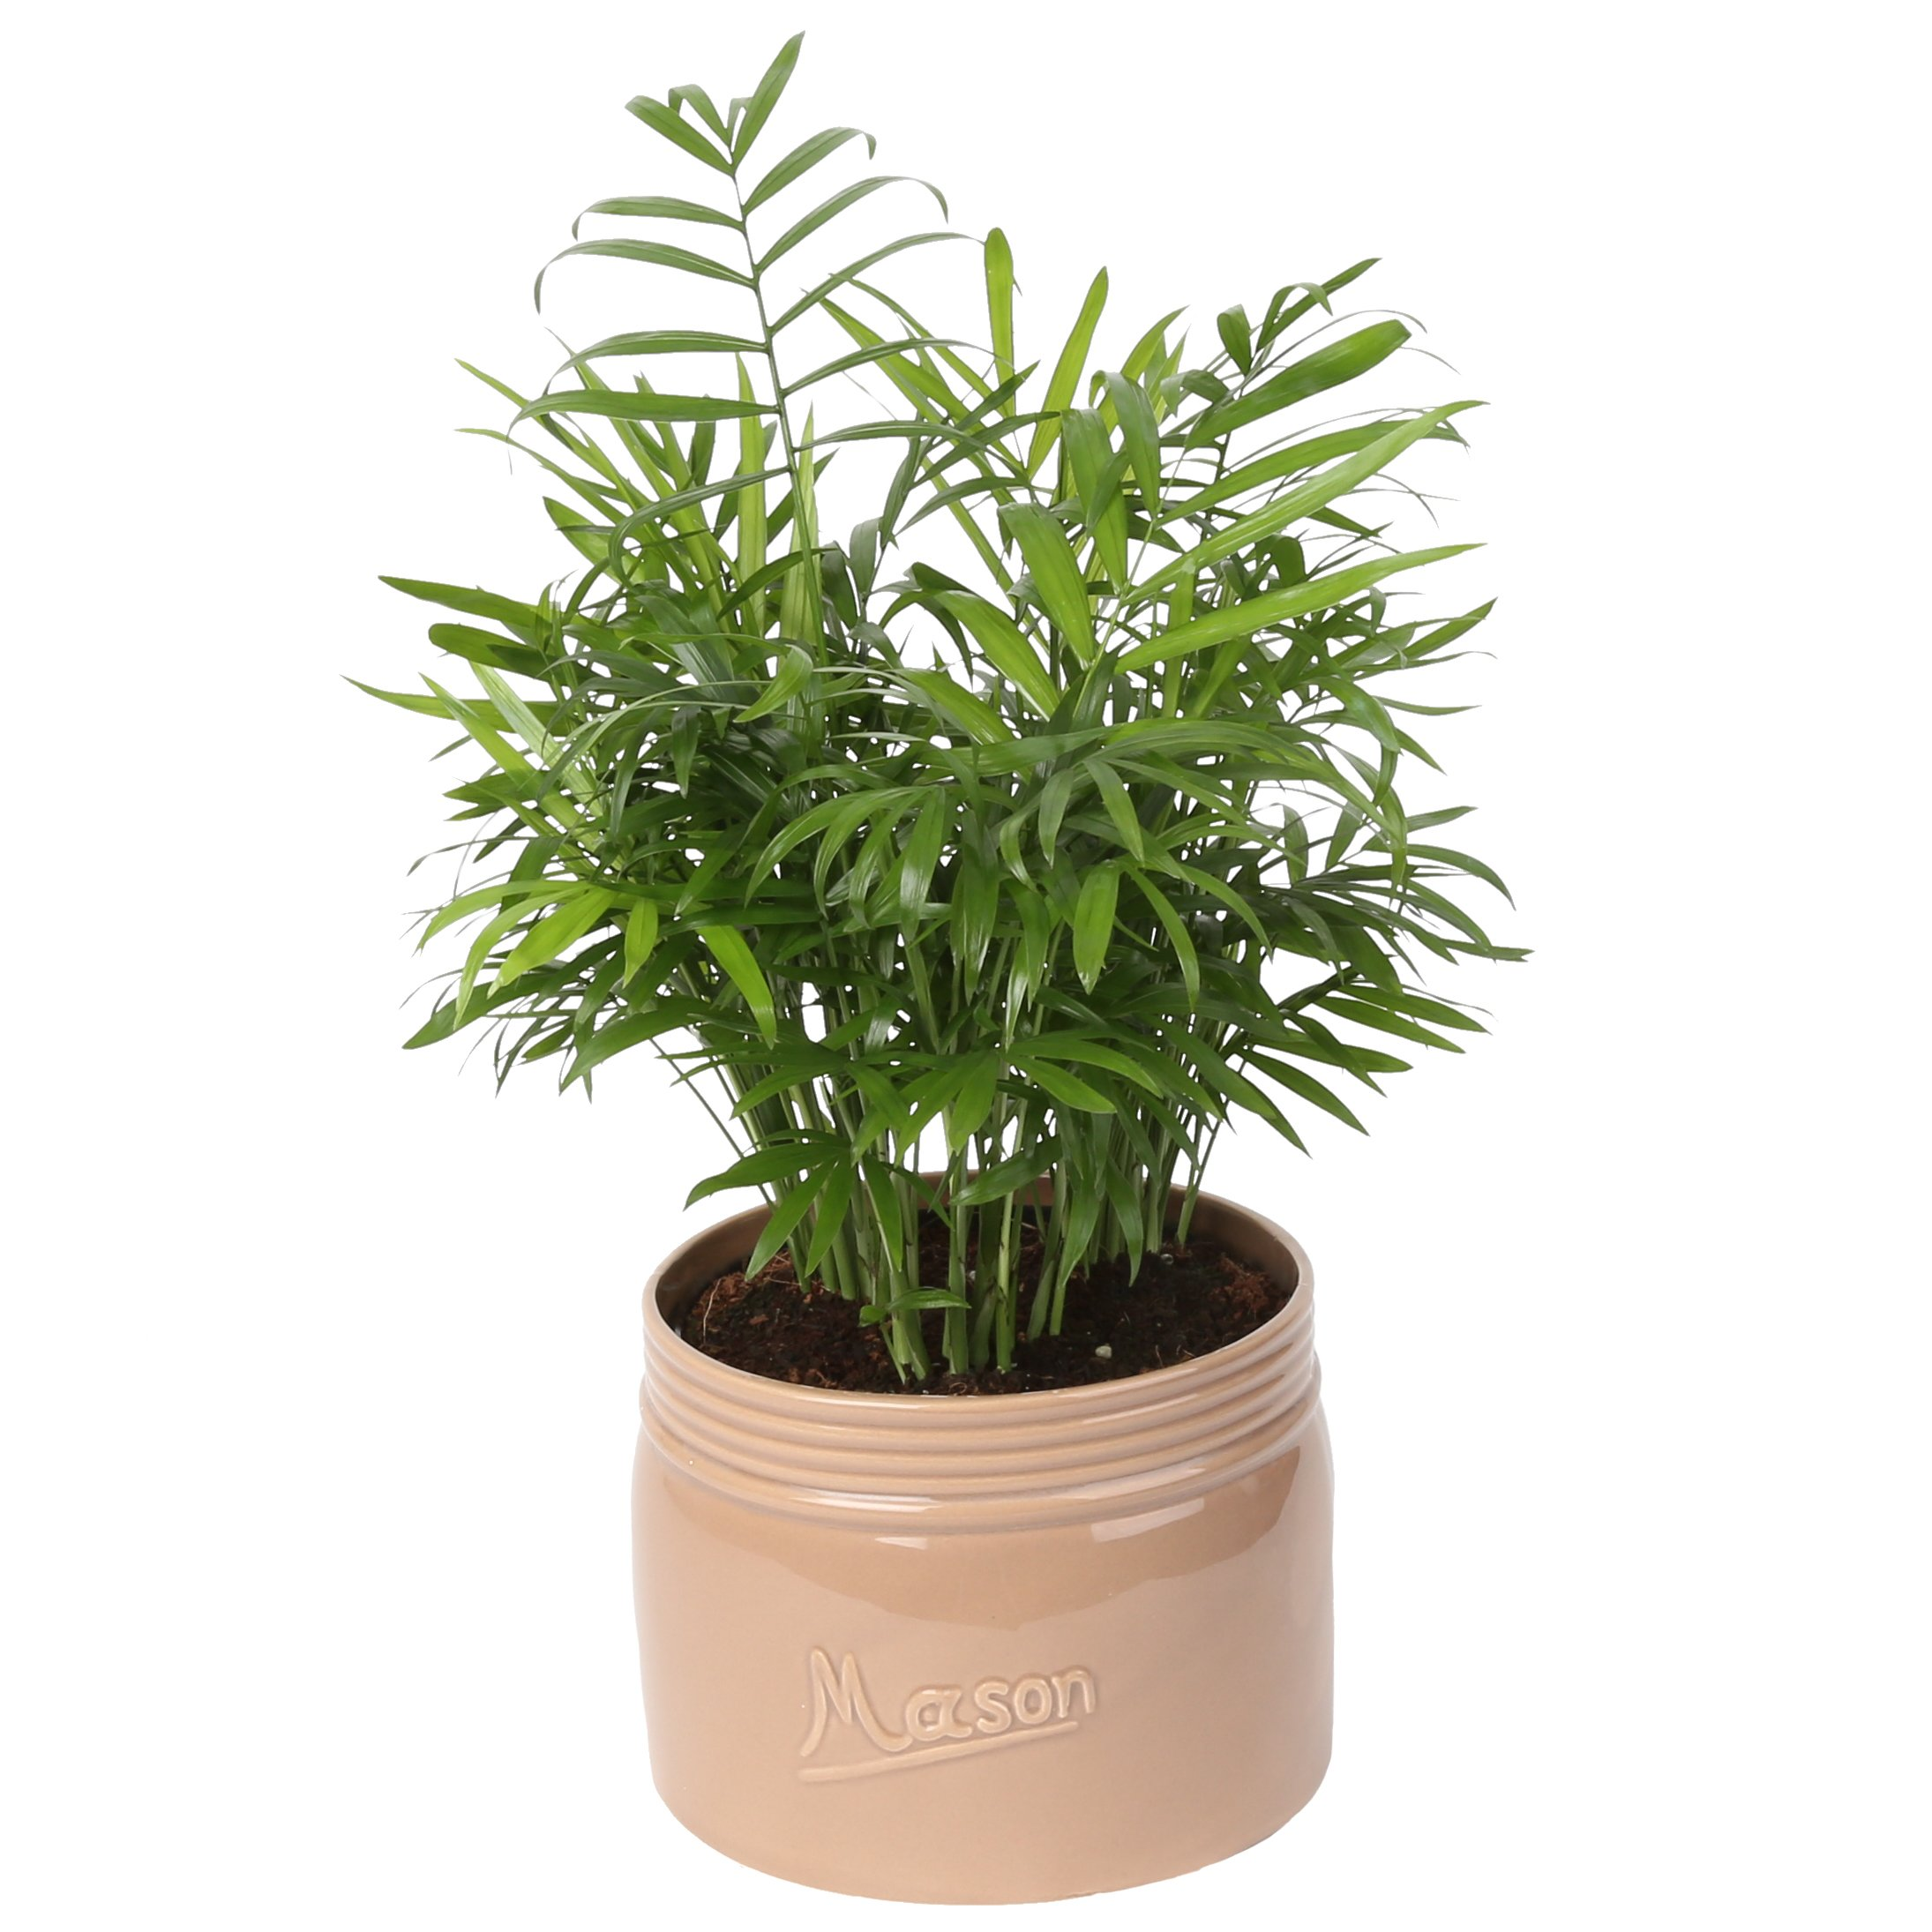 Costa Farms Neanthe Bella Parlor Palm, Live Indoor Tabletop Plant in Home Decor 6-inch Mason Jar Ceramic, Great for Gifts by Costa Farms (Image #1)